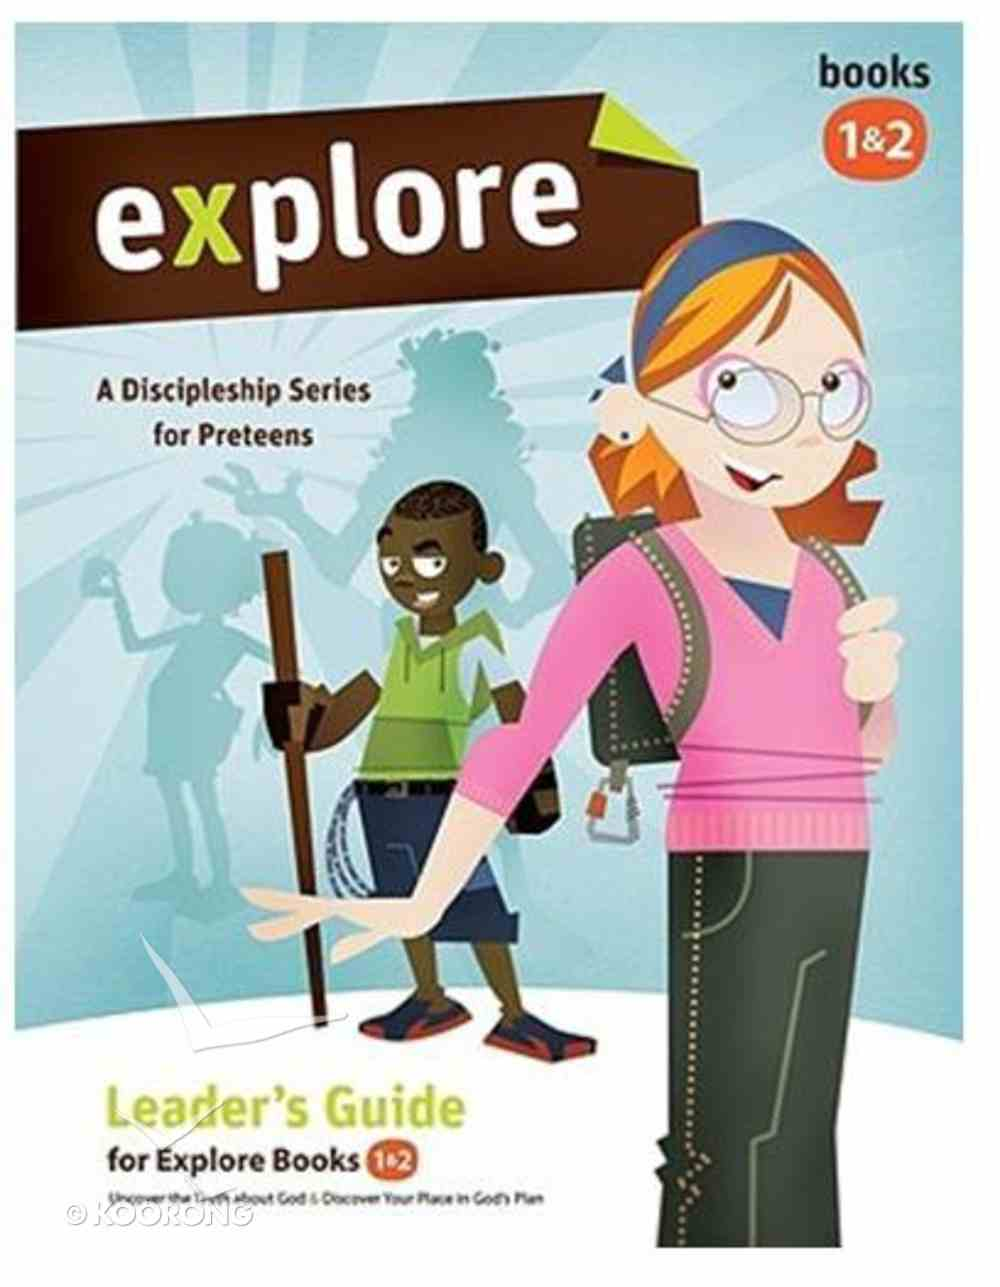 Leaders Guide 1 (For Books 1&2) (Explore Small Group Series) Paperback